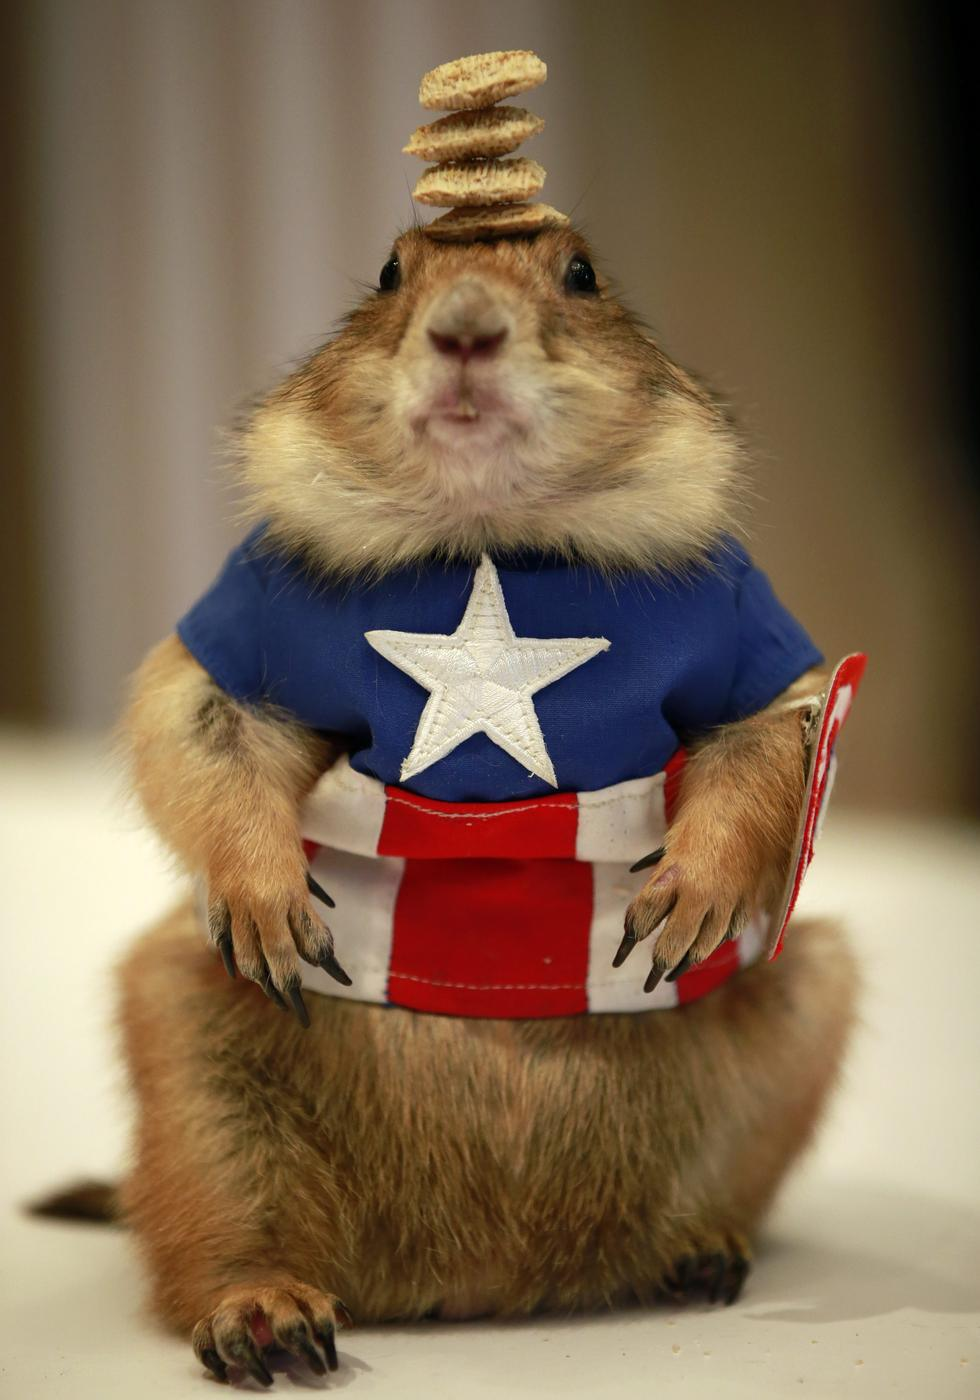 This prairie dog dressed as Captain America and balancing some food is 100 percent real